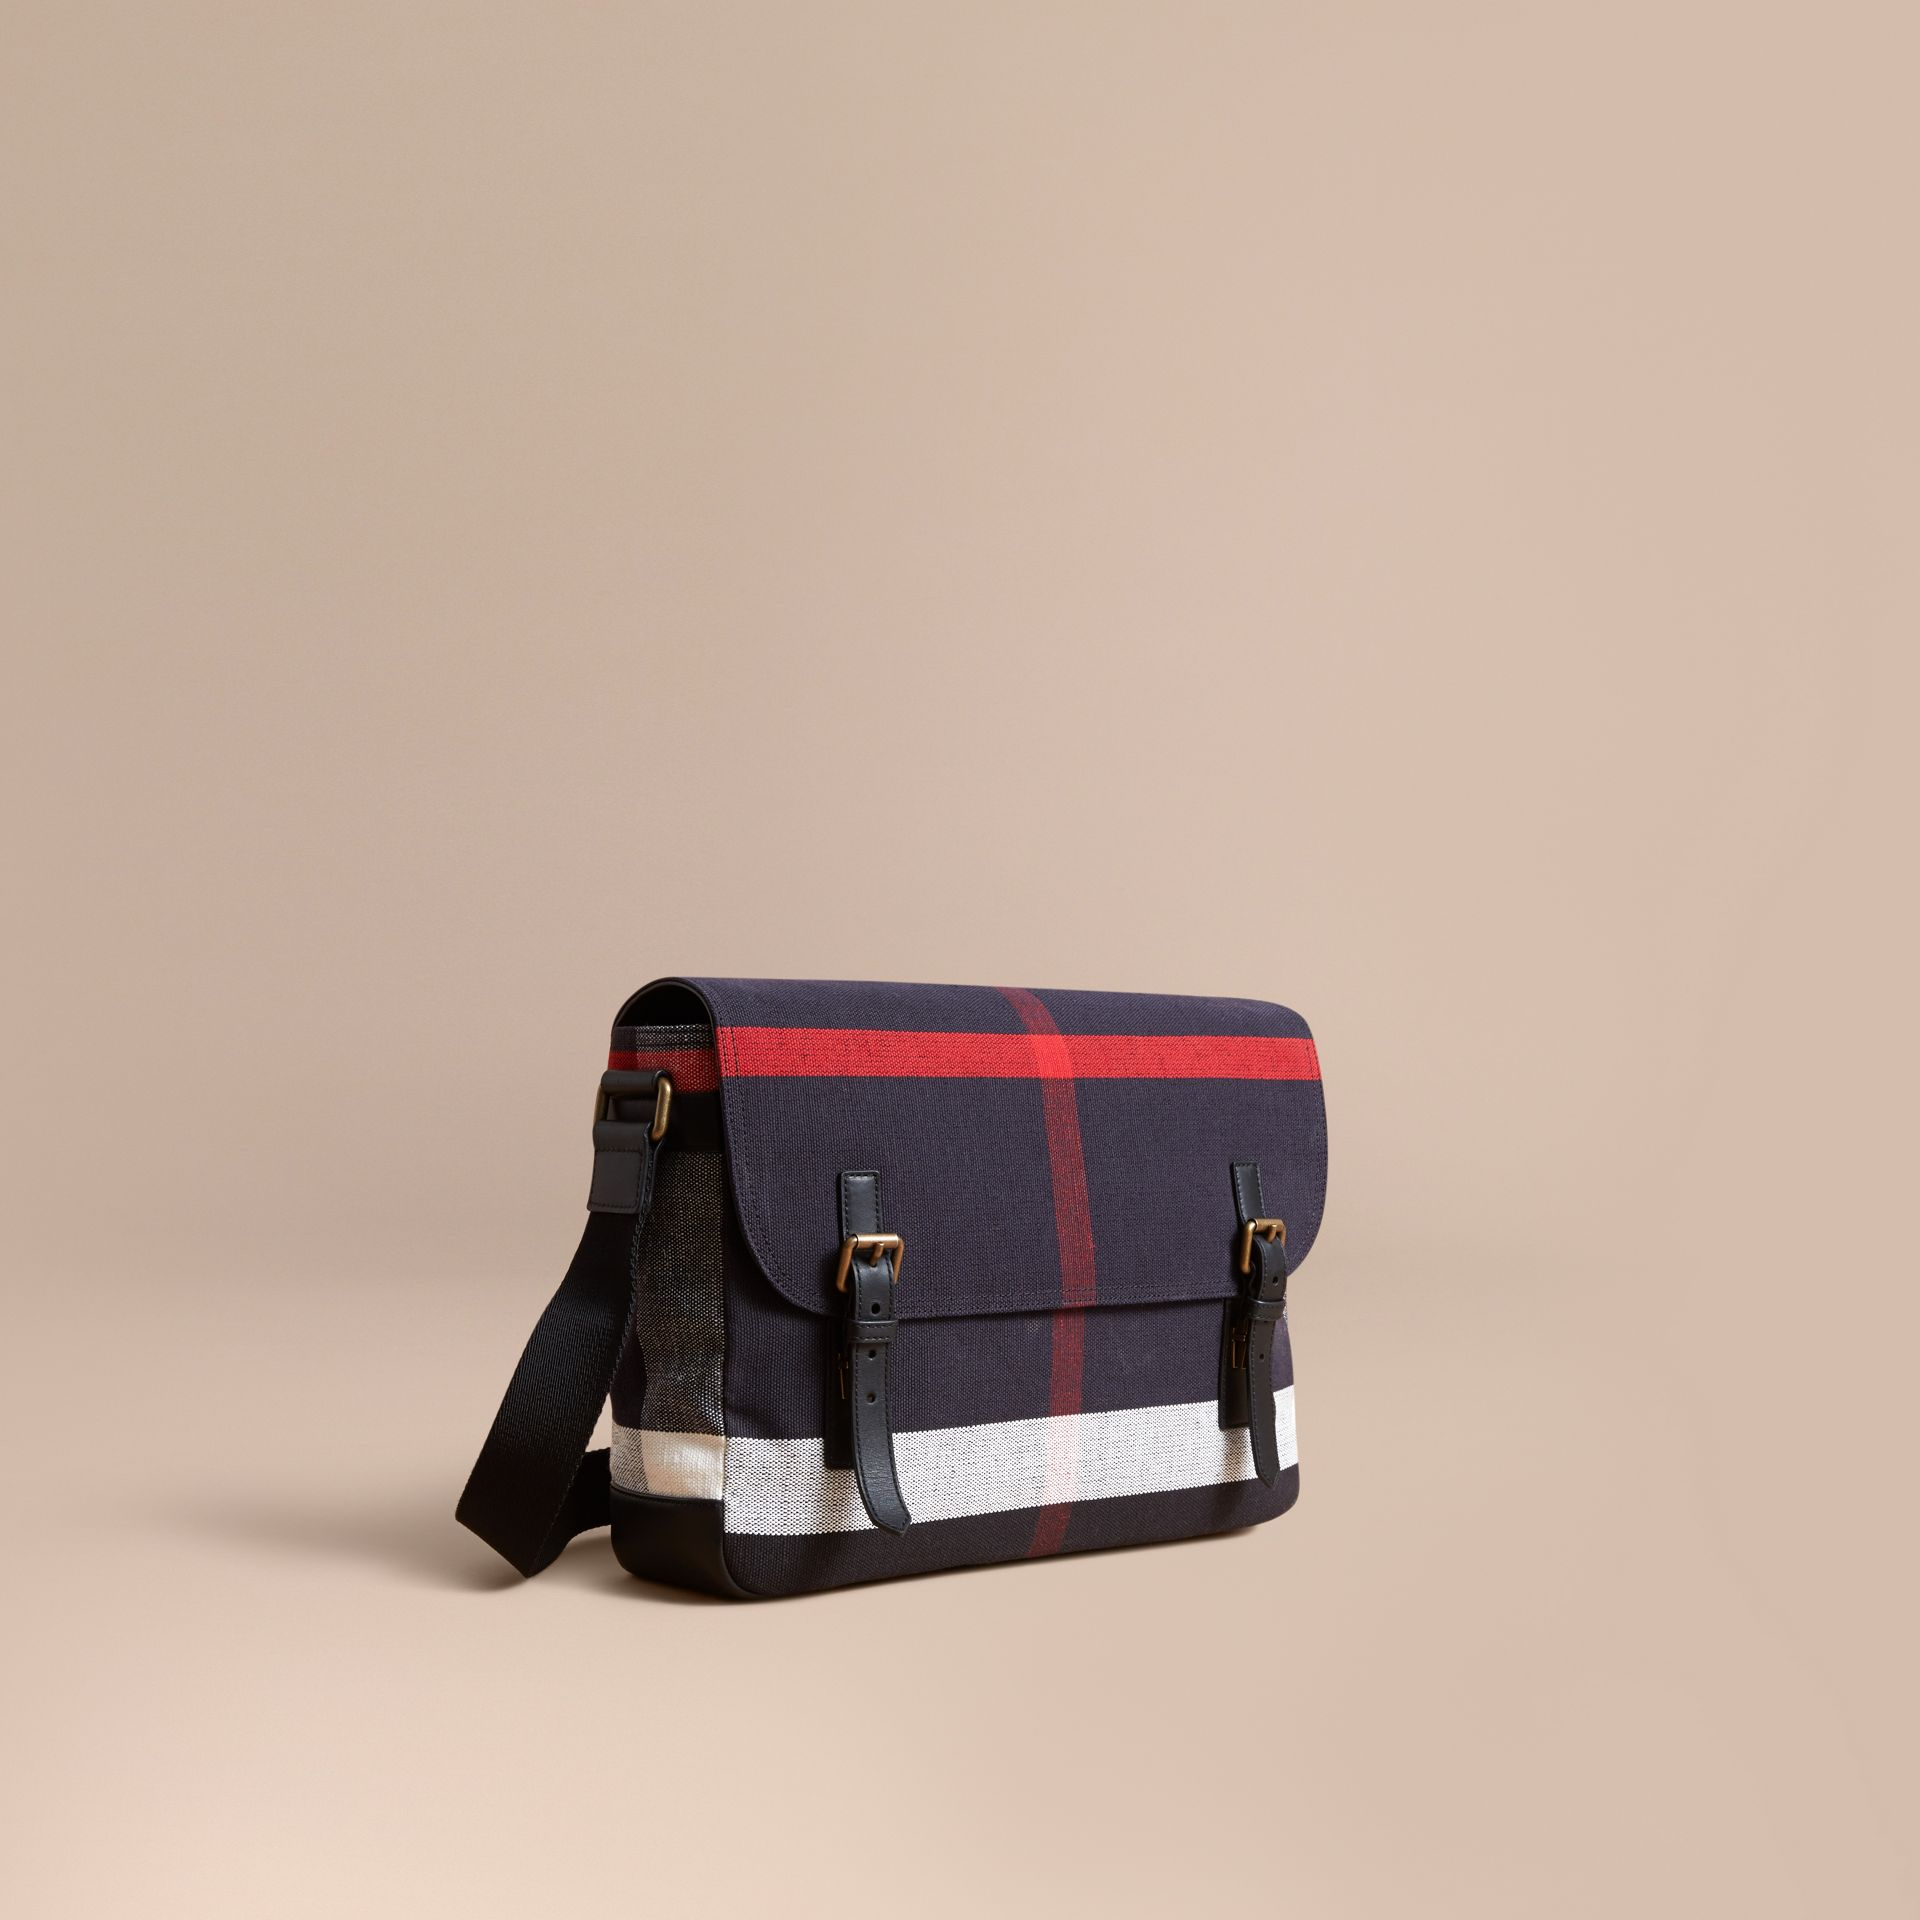 Medium Canvas Check Messenger Bag in Black - Men | Burberry - gallery image 1